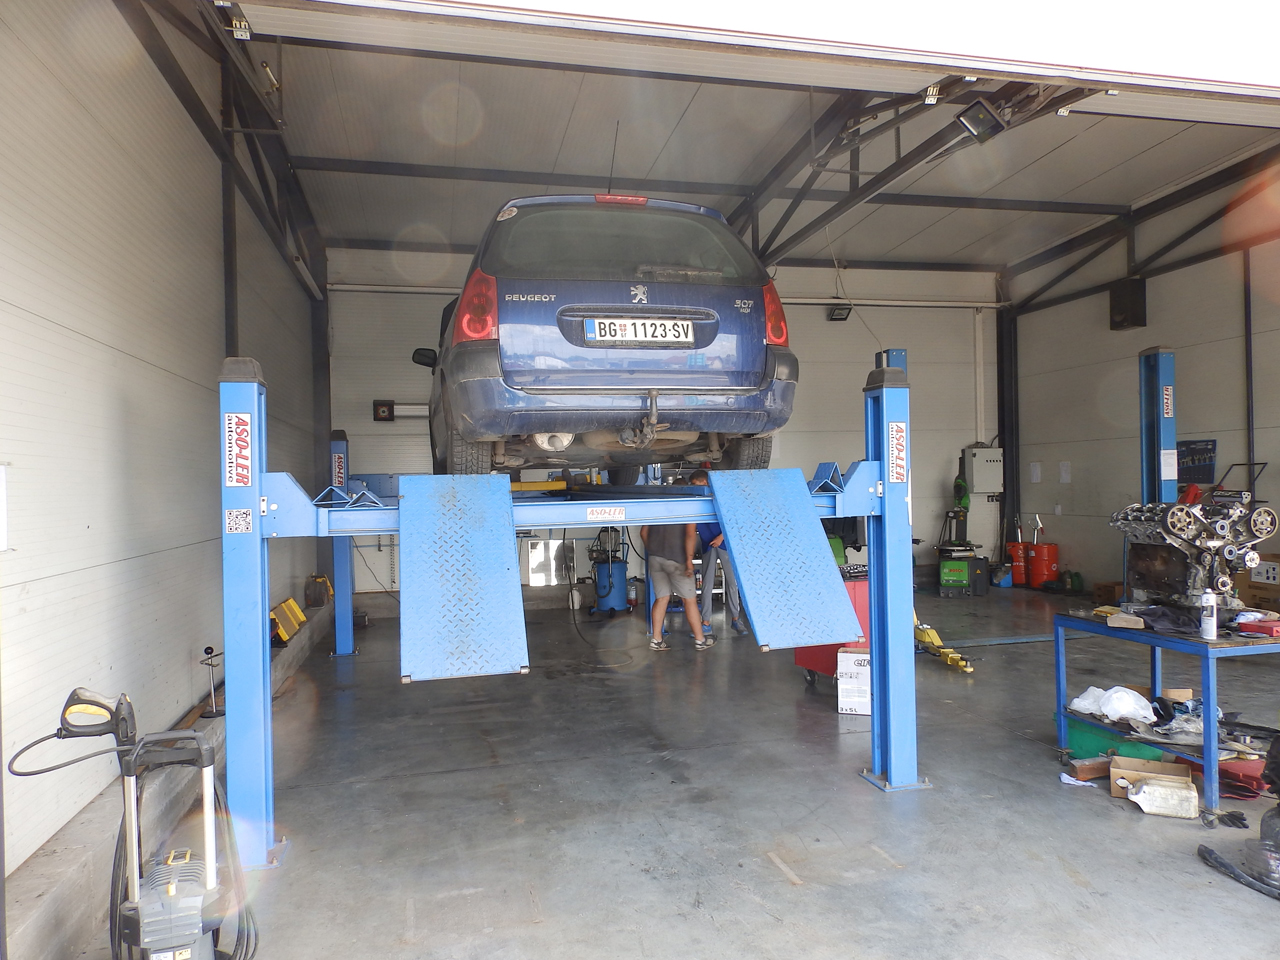 CAR CENTER JOVANOVIC Replacement parts Beograd